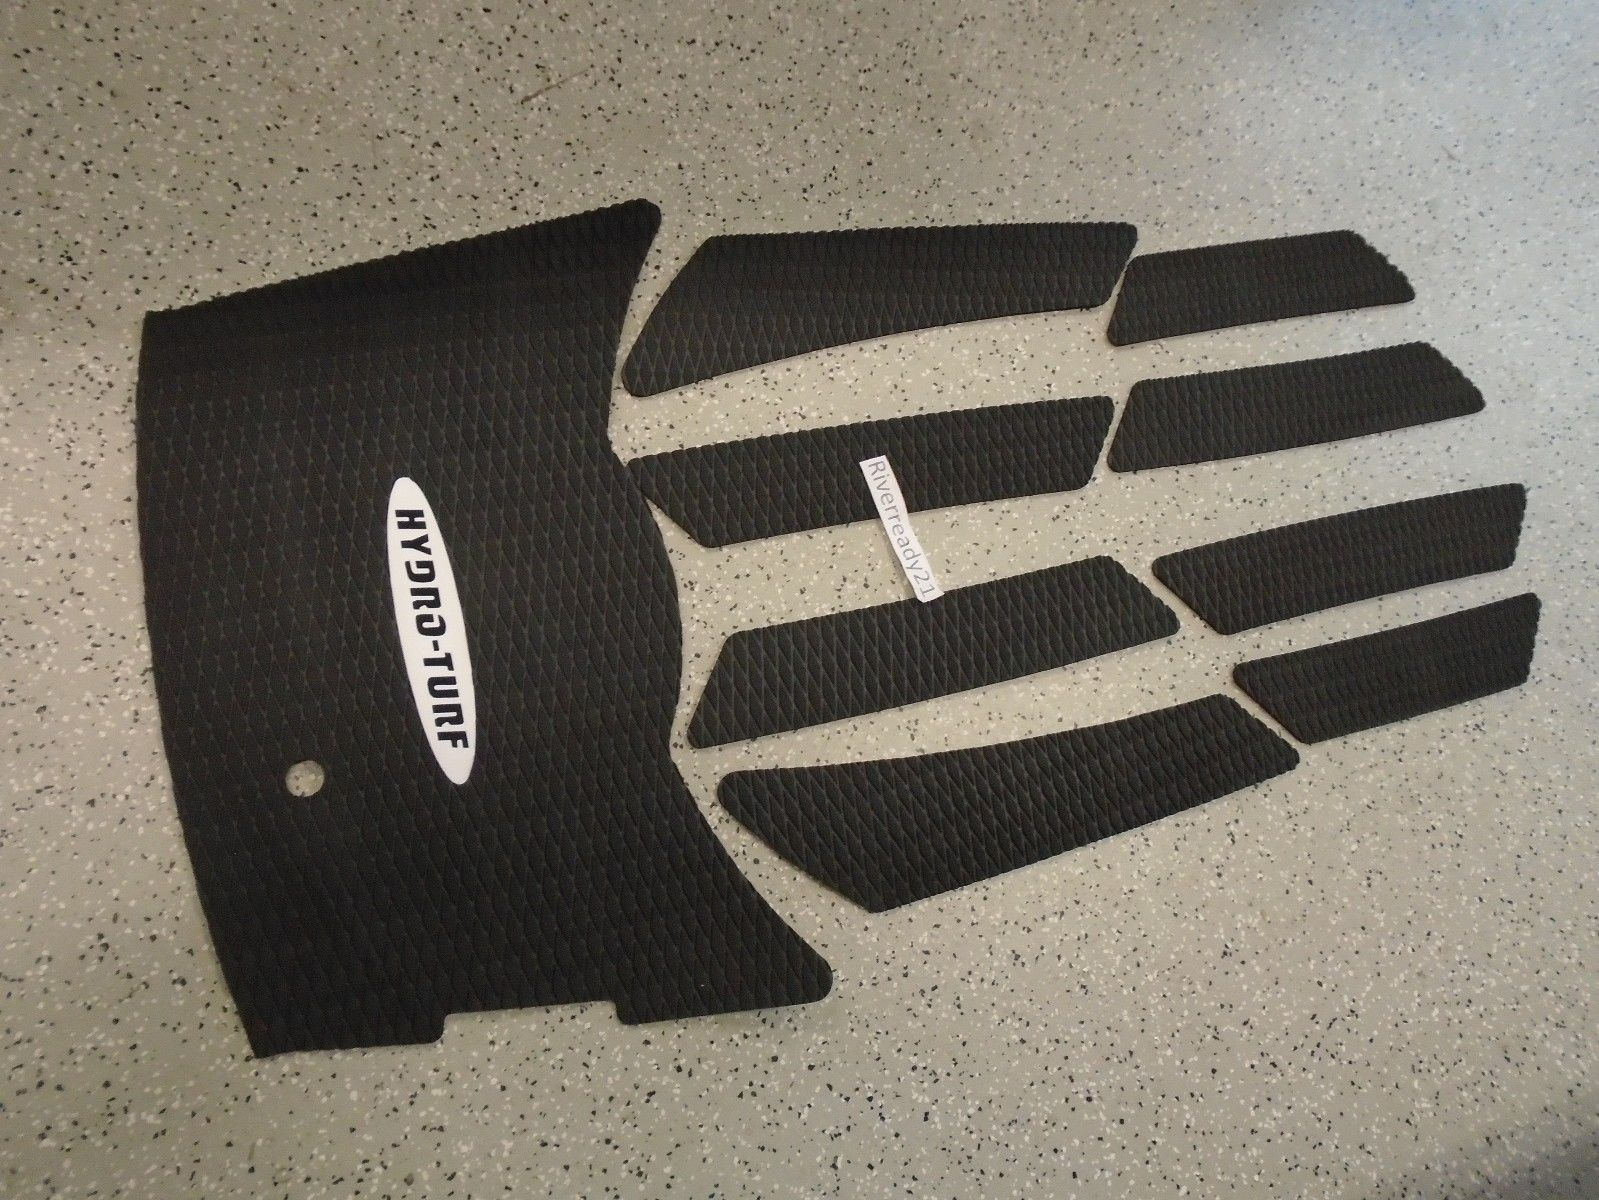 Yamaha VX110 Hydro-Turf Mat Kit Wave-Runner Black NEW HTVX In Stock RTS Blk